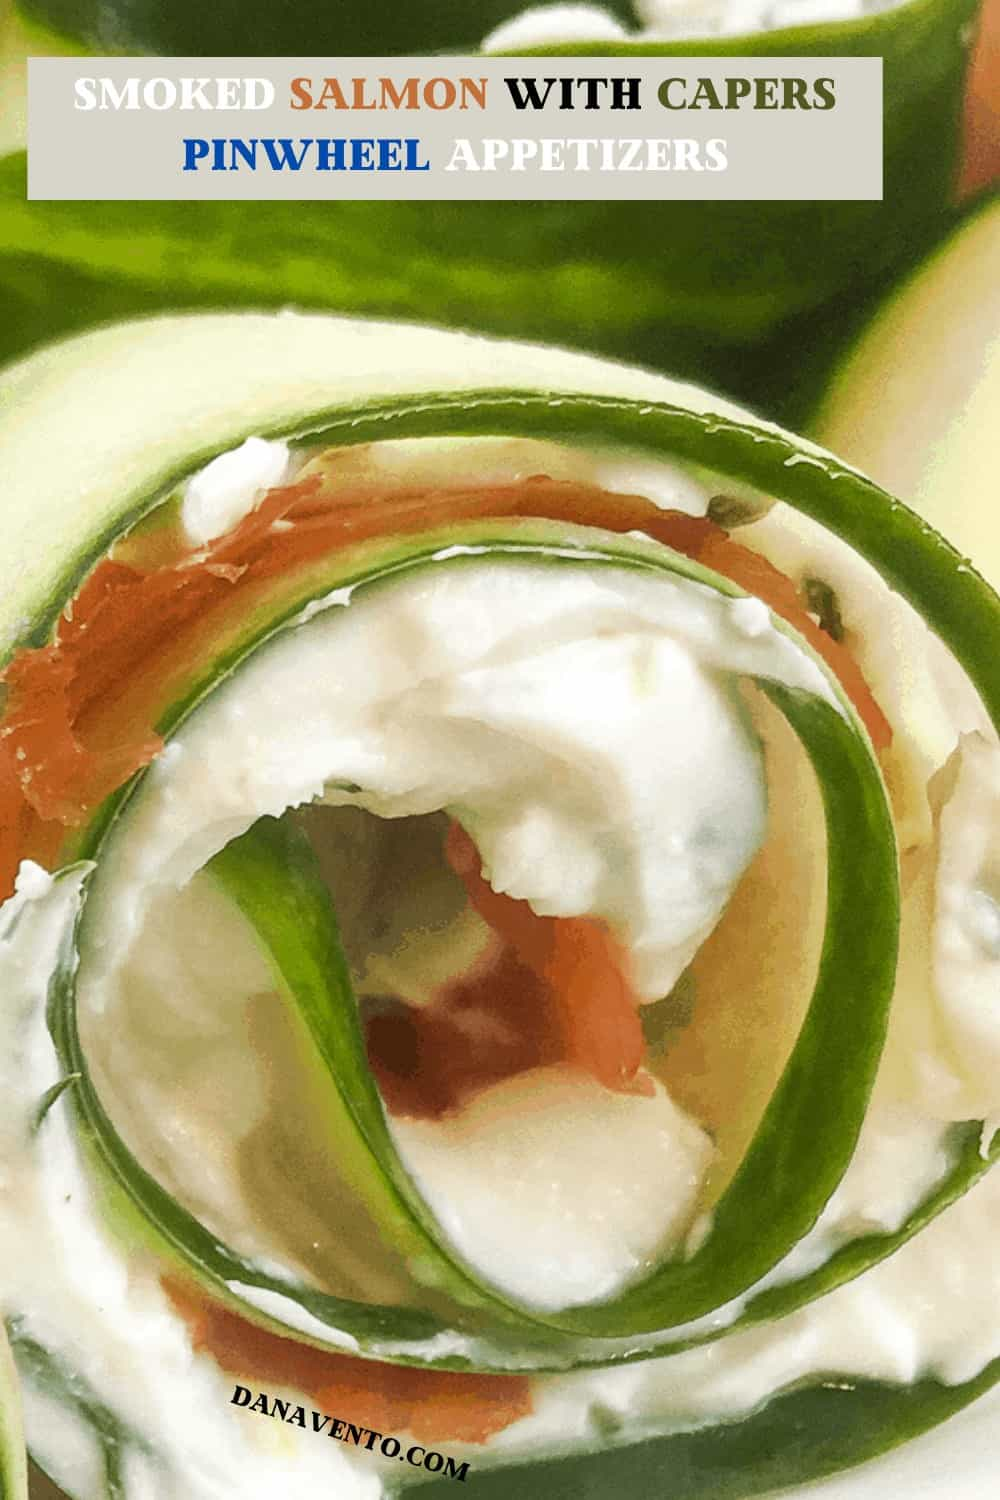 Easy Smoked Salmon With Capers Pinwheel Appetizers